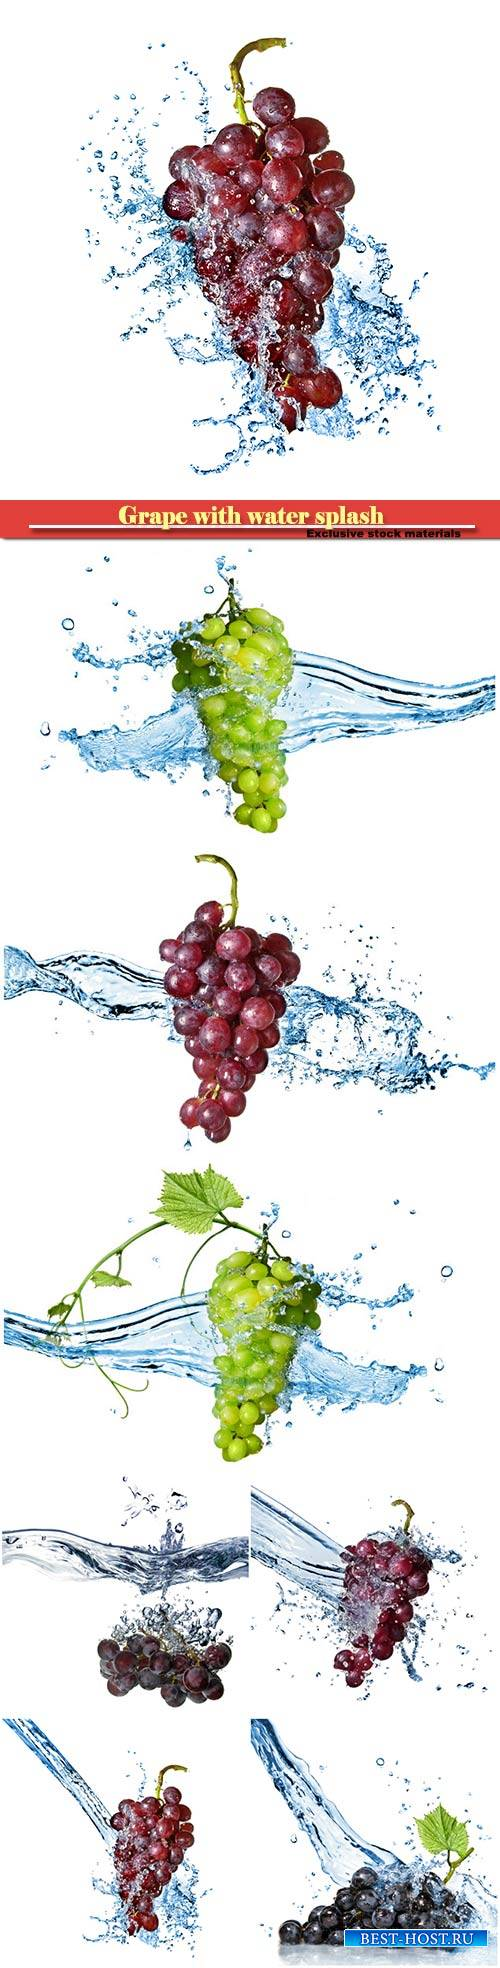 Grape with water splash isolated on white background